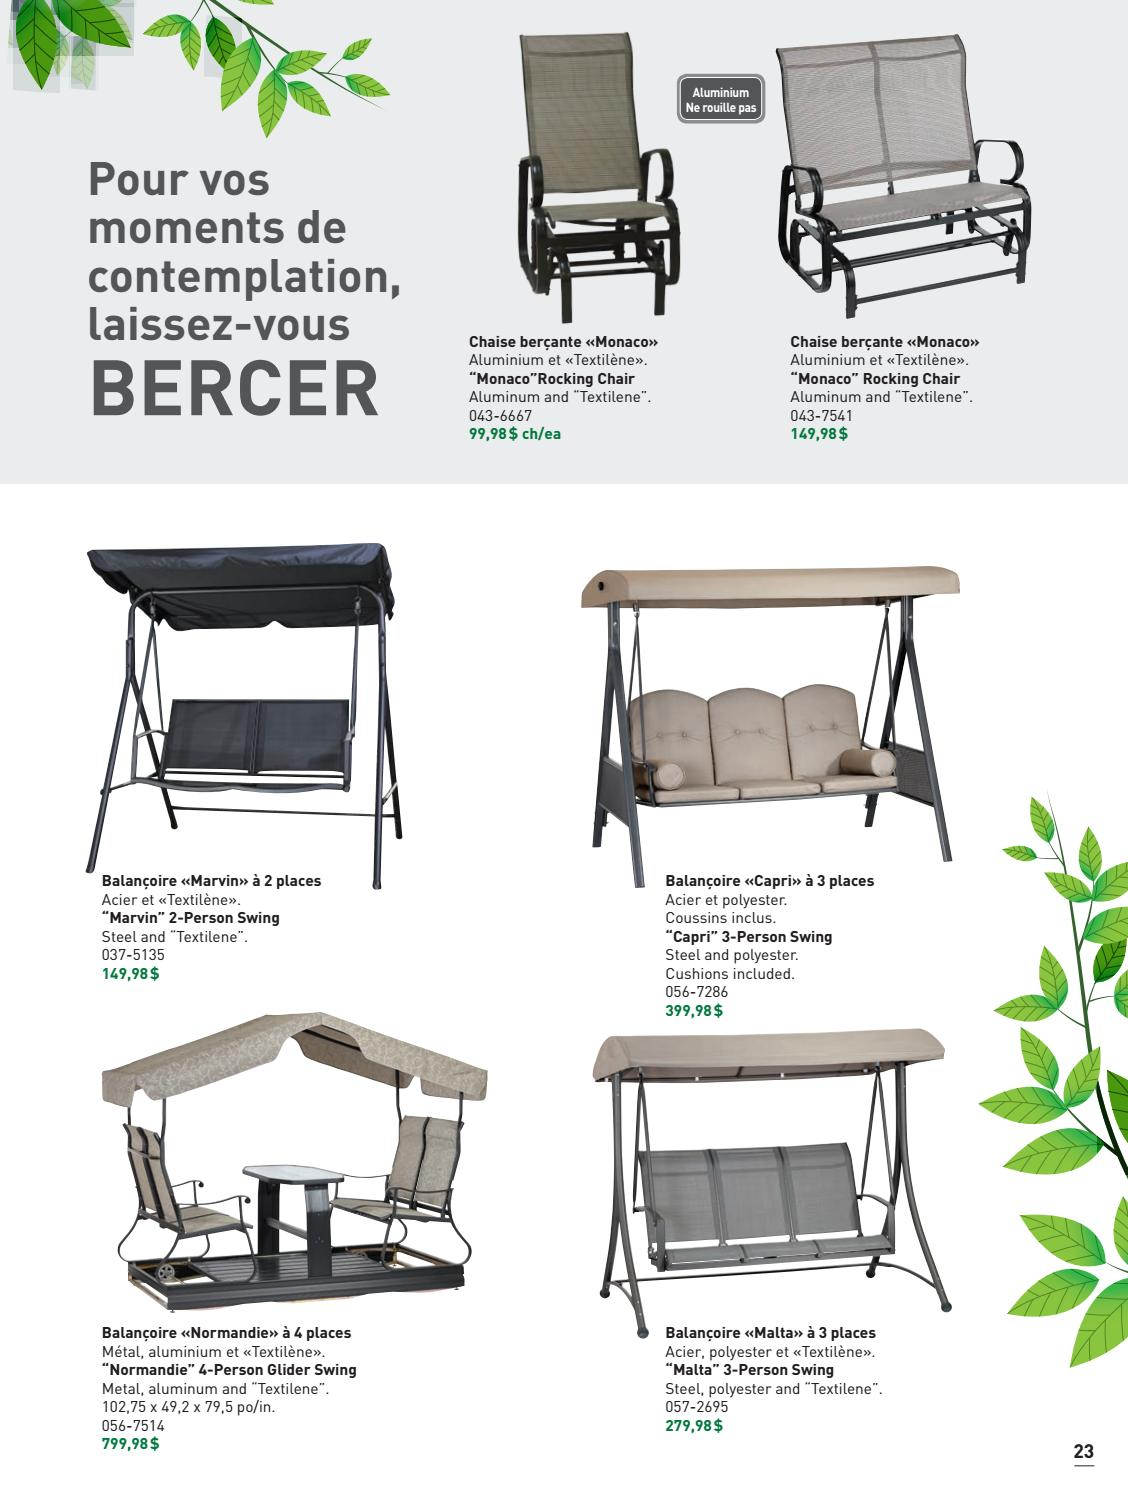 Catalogue Saisonnier BMR 2017 by Groupe BMR - issuu on